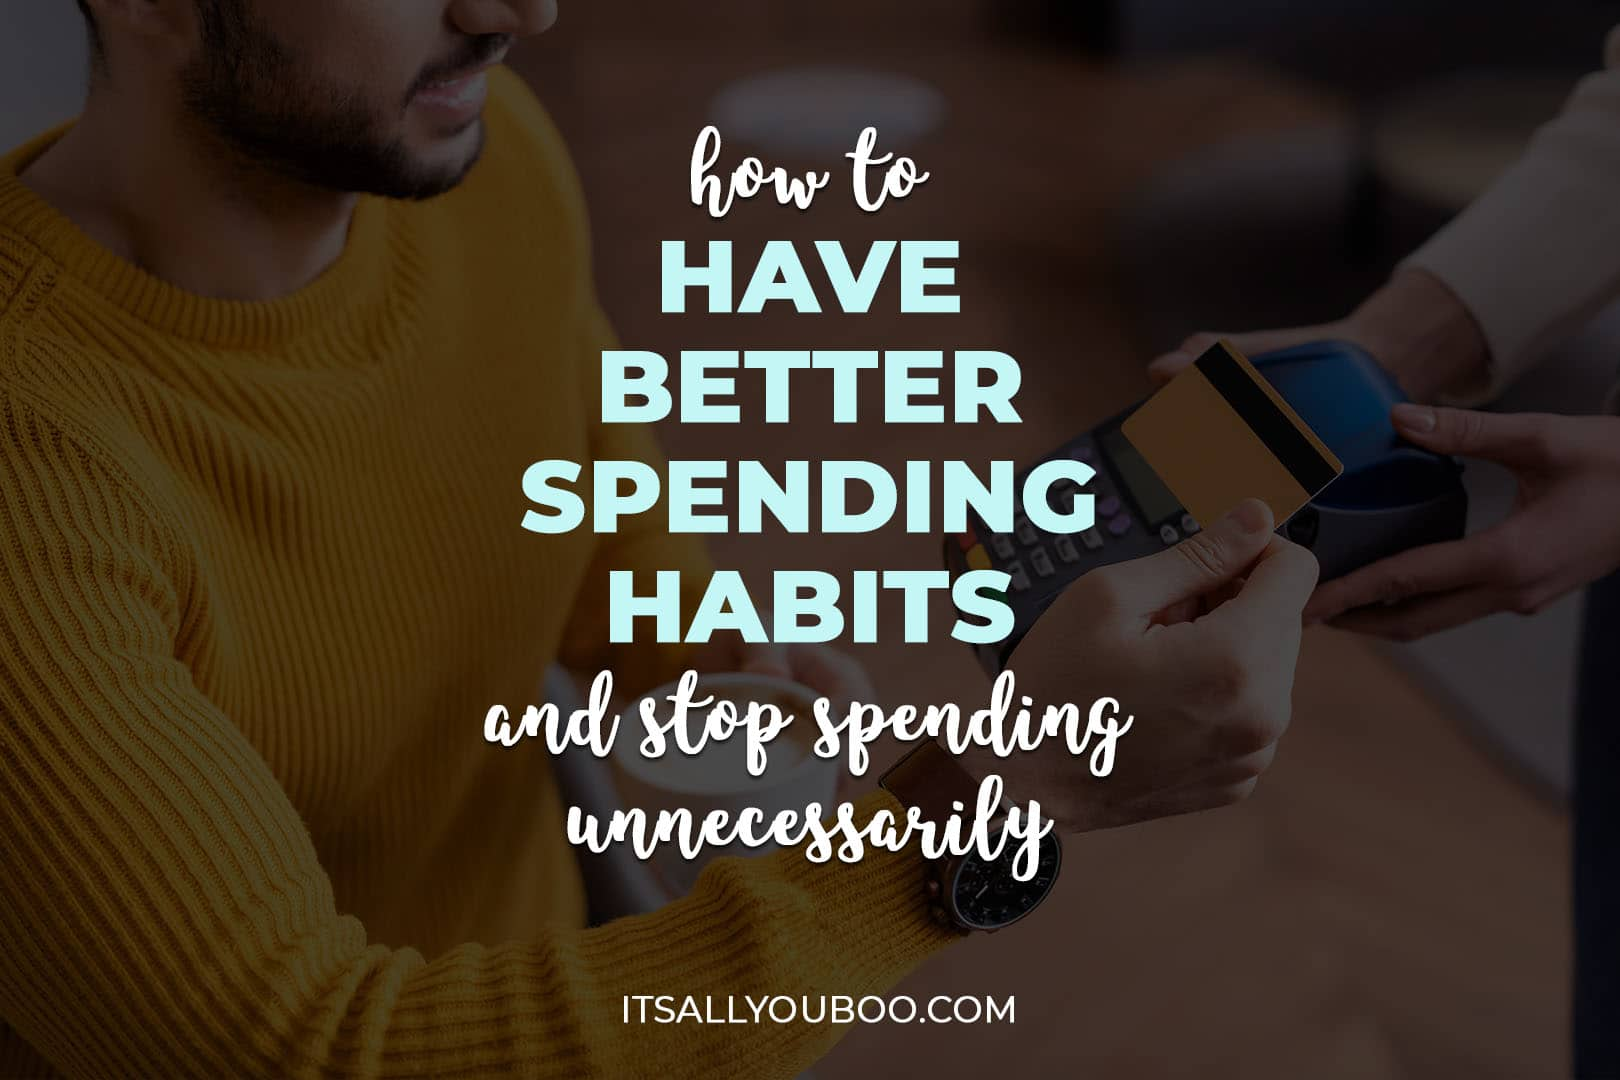 How to Have Better Spending Habits and Stop Spending Unnecessarily